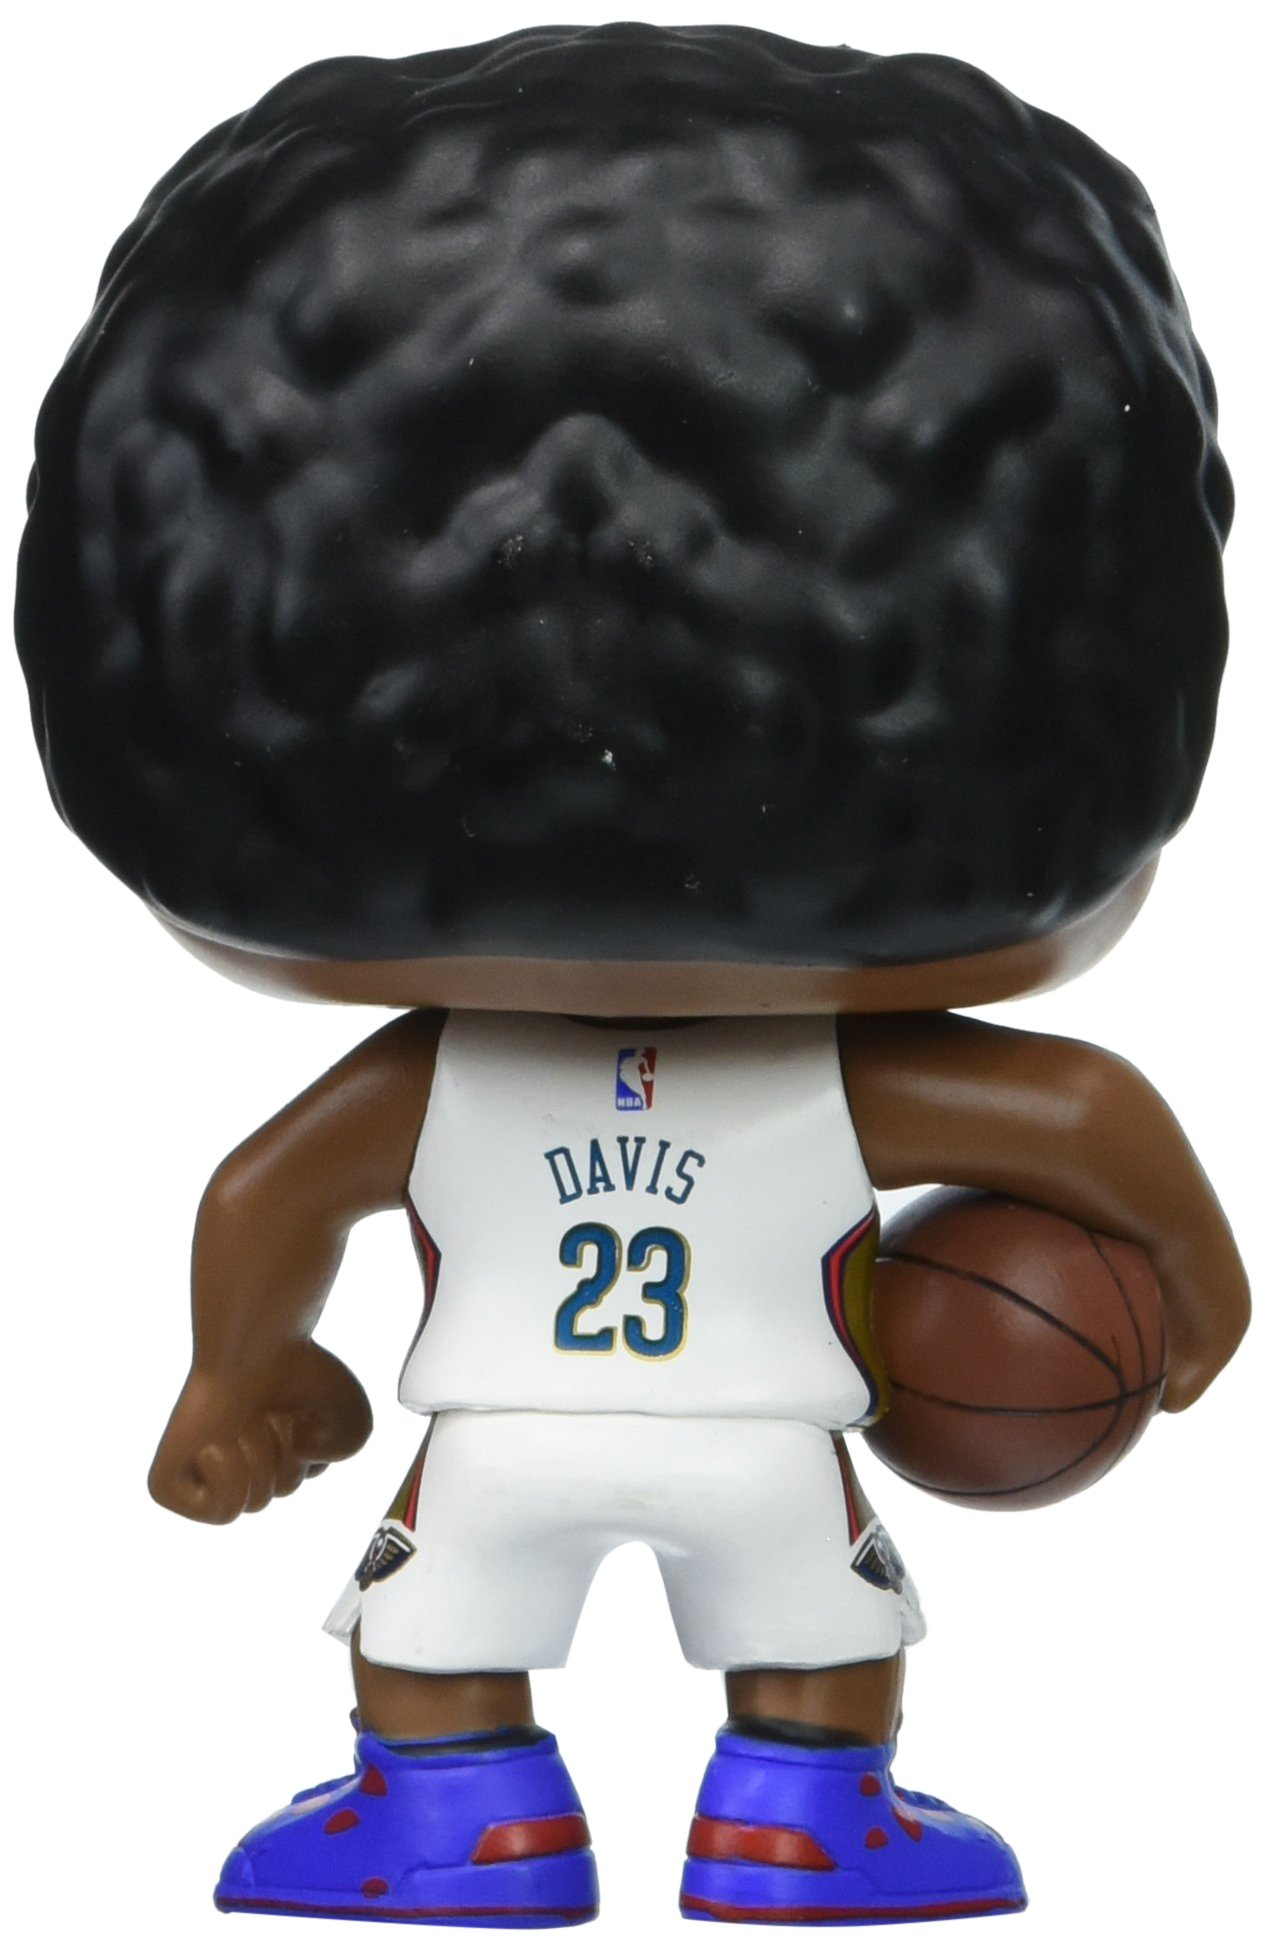 Funko Pop Anthony Davis New Orleans Pelicans (NBA 23) Funko Pop NBA